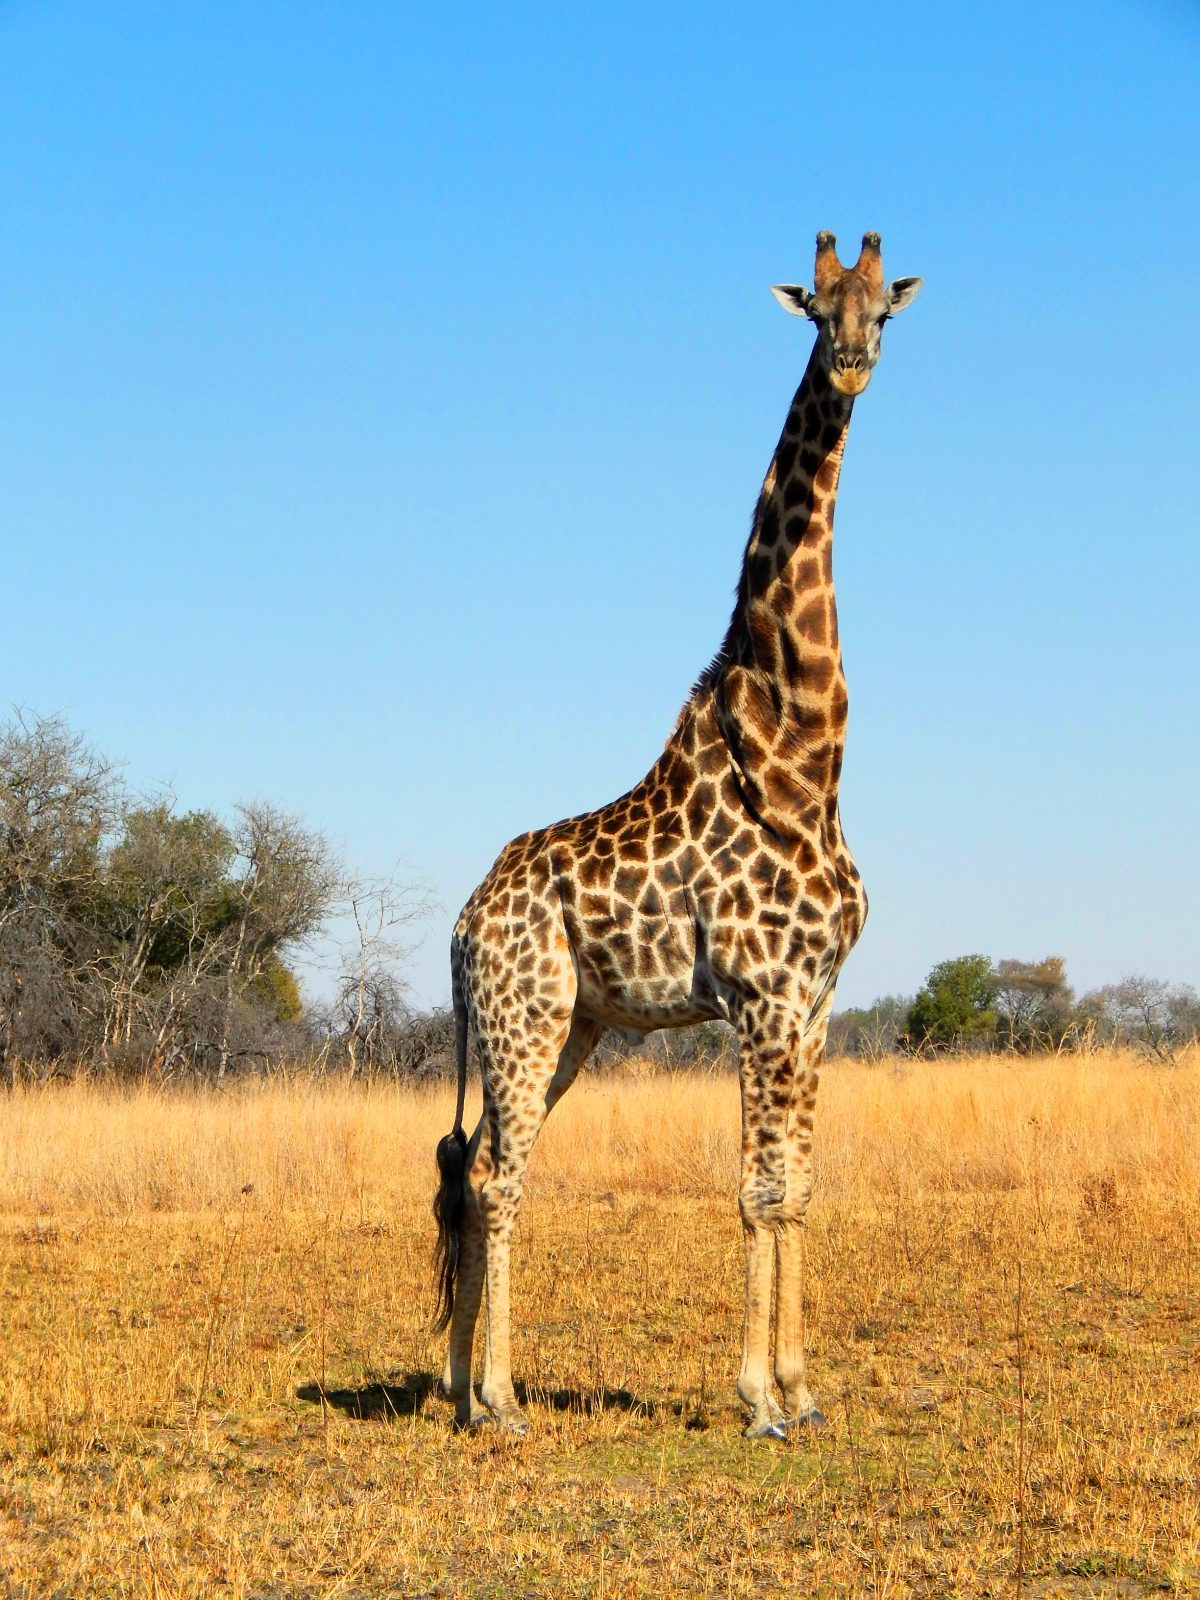 10 Interesting Facts About Giraffes